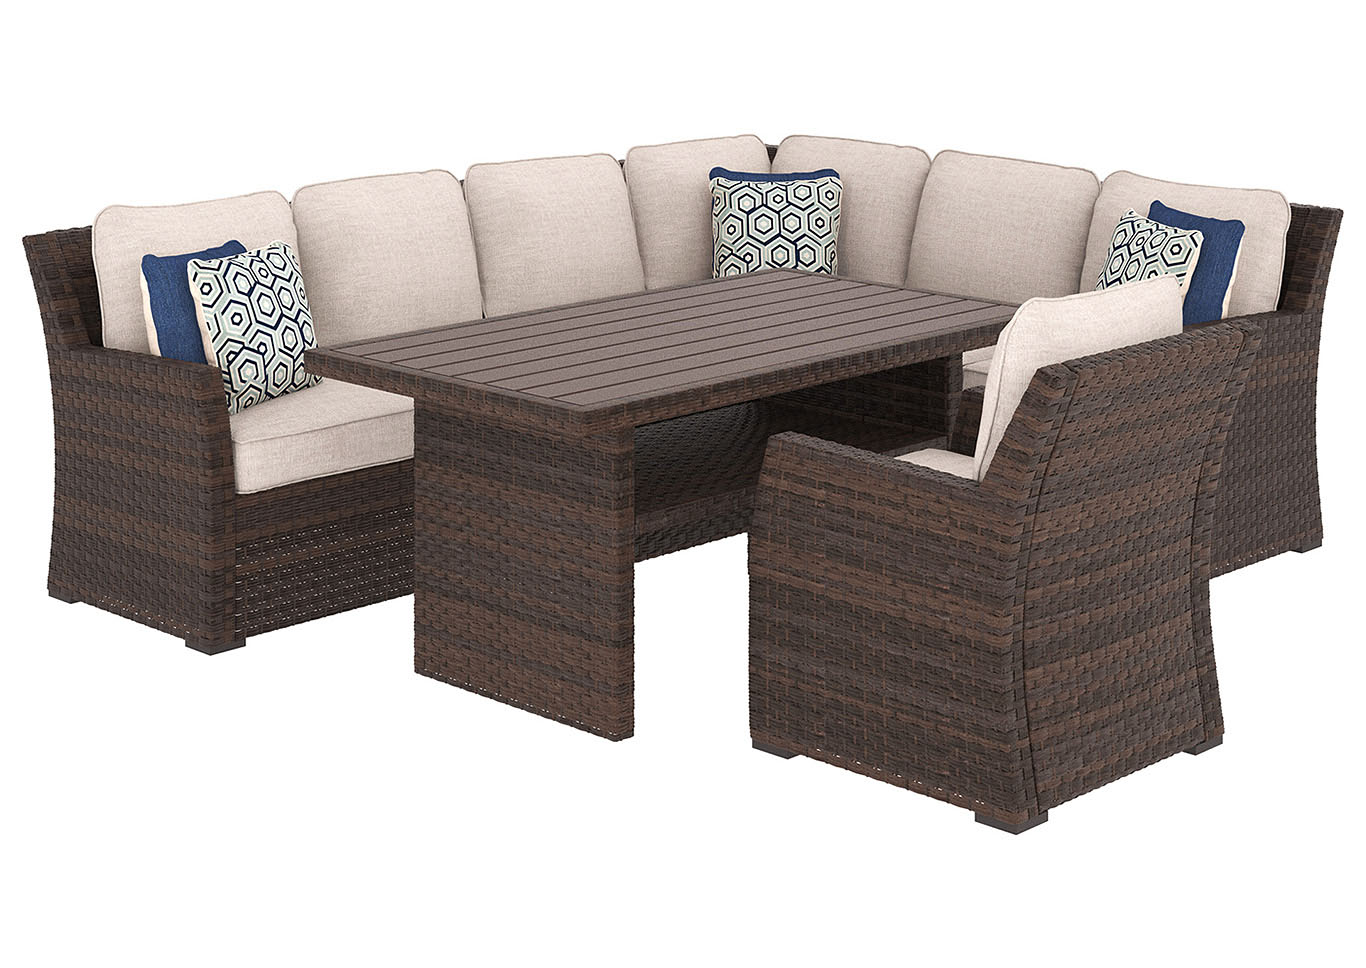 Salceda Beige/Brown Rectangular Dining Table w/Sofa Sectional & Lounge Chair Cushion,Outdoor By Ashley